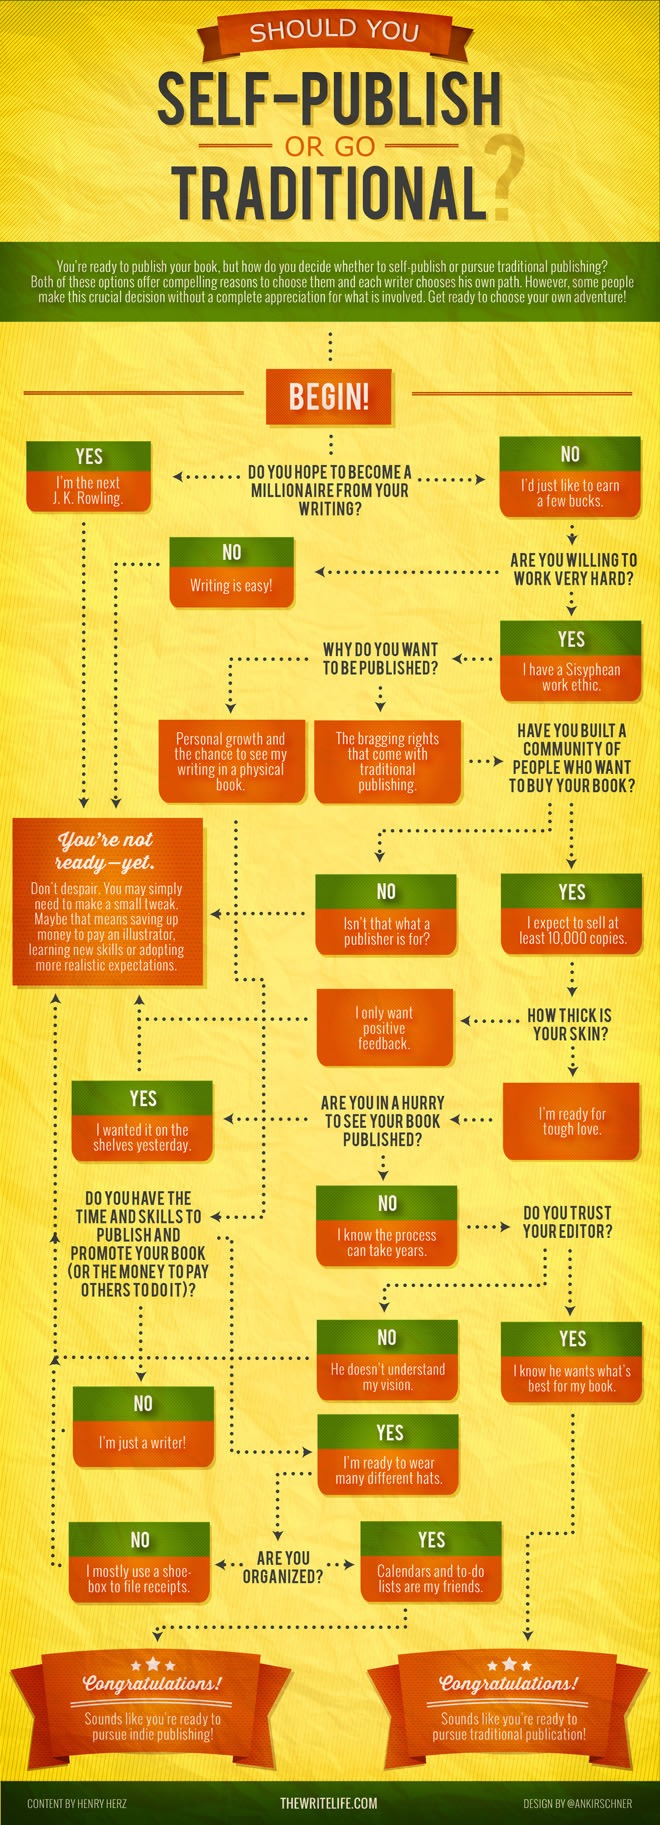 Infographically Explained: Should You Self-Publish or Go Traditional?